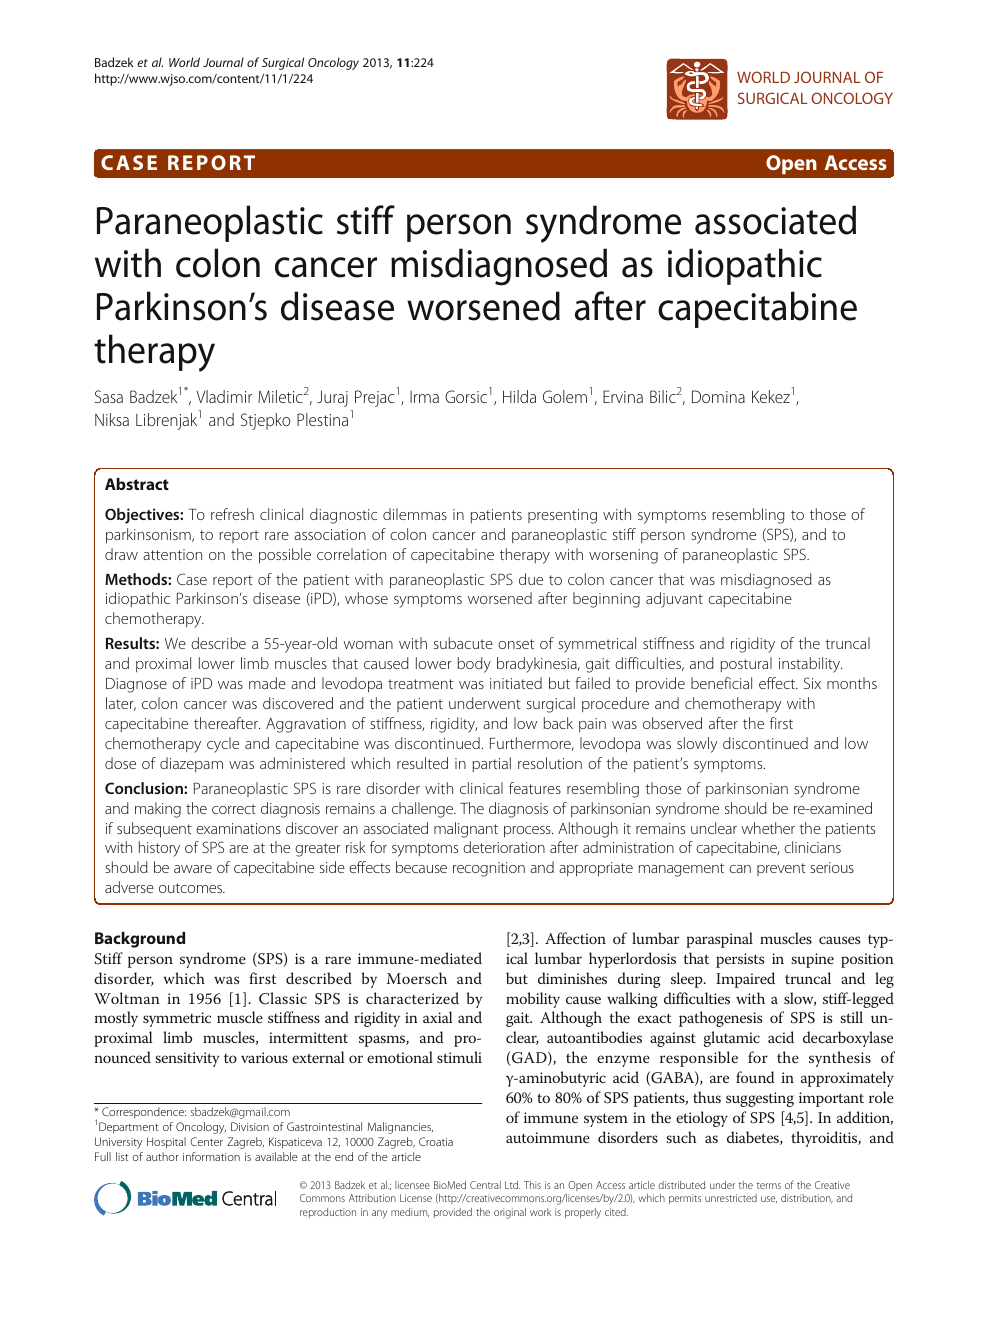 Paraneoplastic Stiff Person Syndrome Associated With Colon Cancer Misdiagnosed As Idiopathic Parkinson S Disease Worsened After Capecitabine Therapy Topic Of Research Paper In Clinical Medicine Download Scholarly Article Pdf And Read For